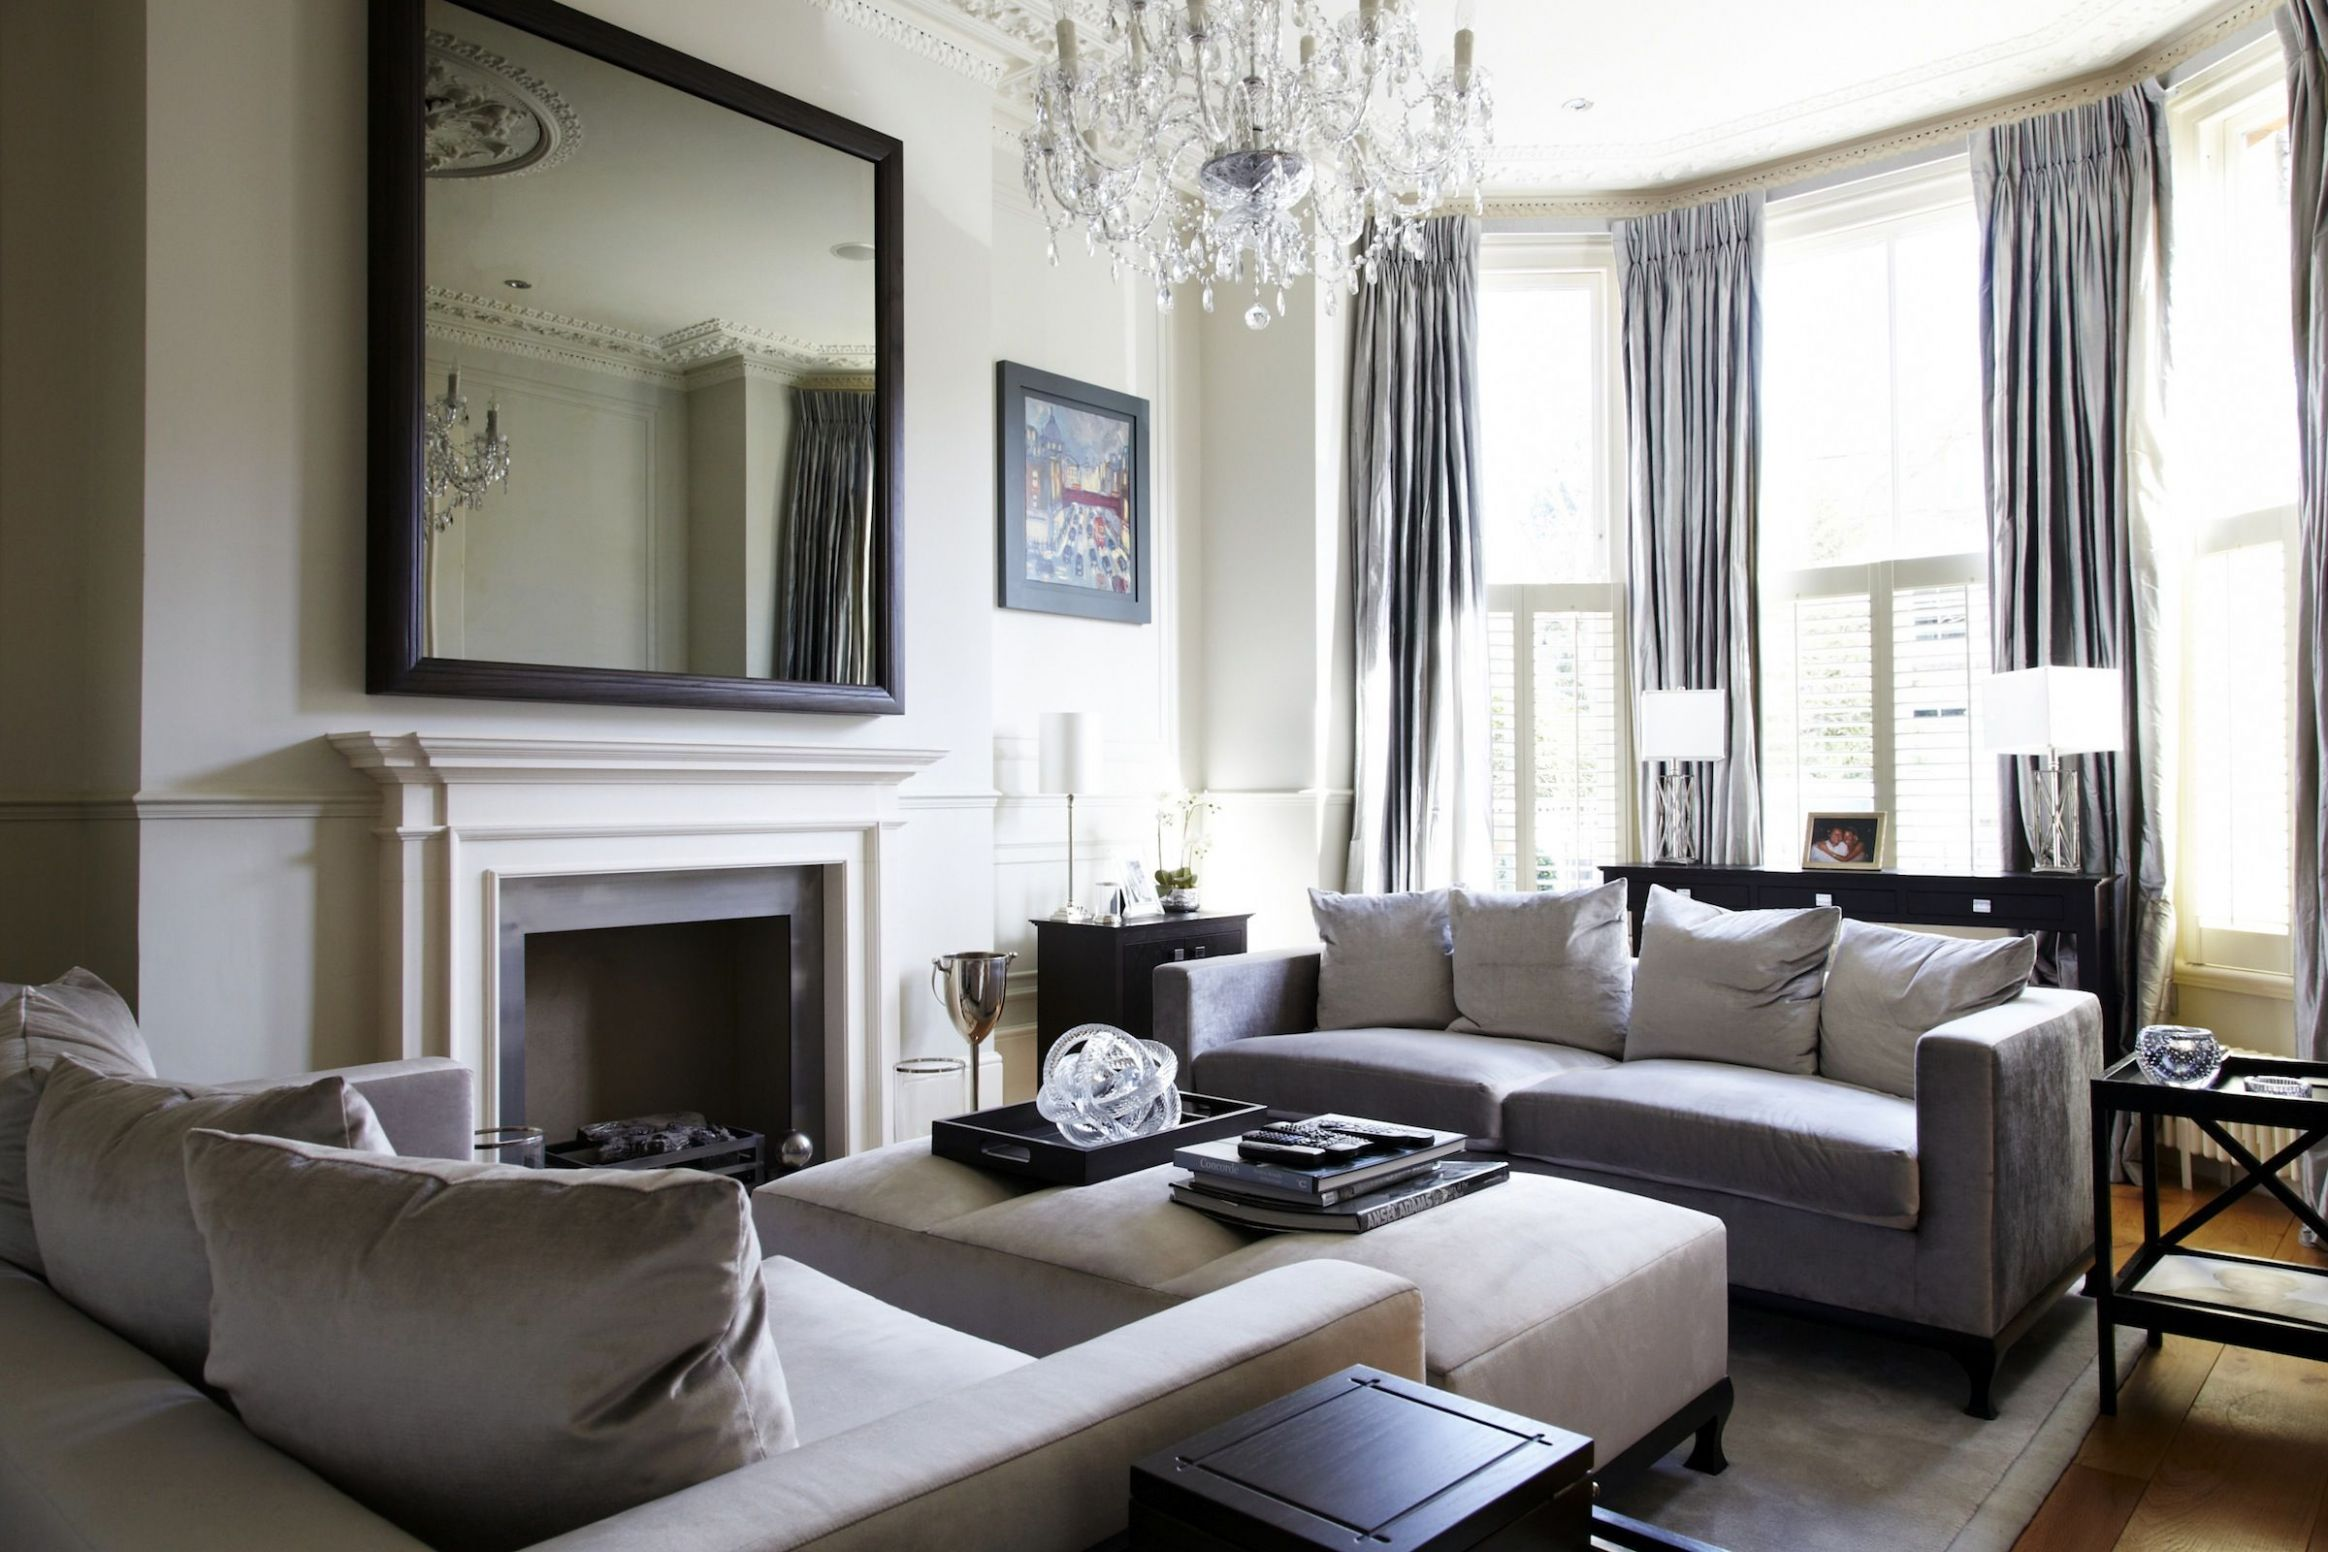 Living Room Mirrors Design Ideas Modern Small Living Room Design ..